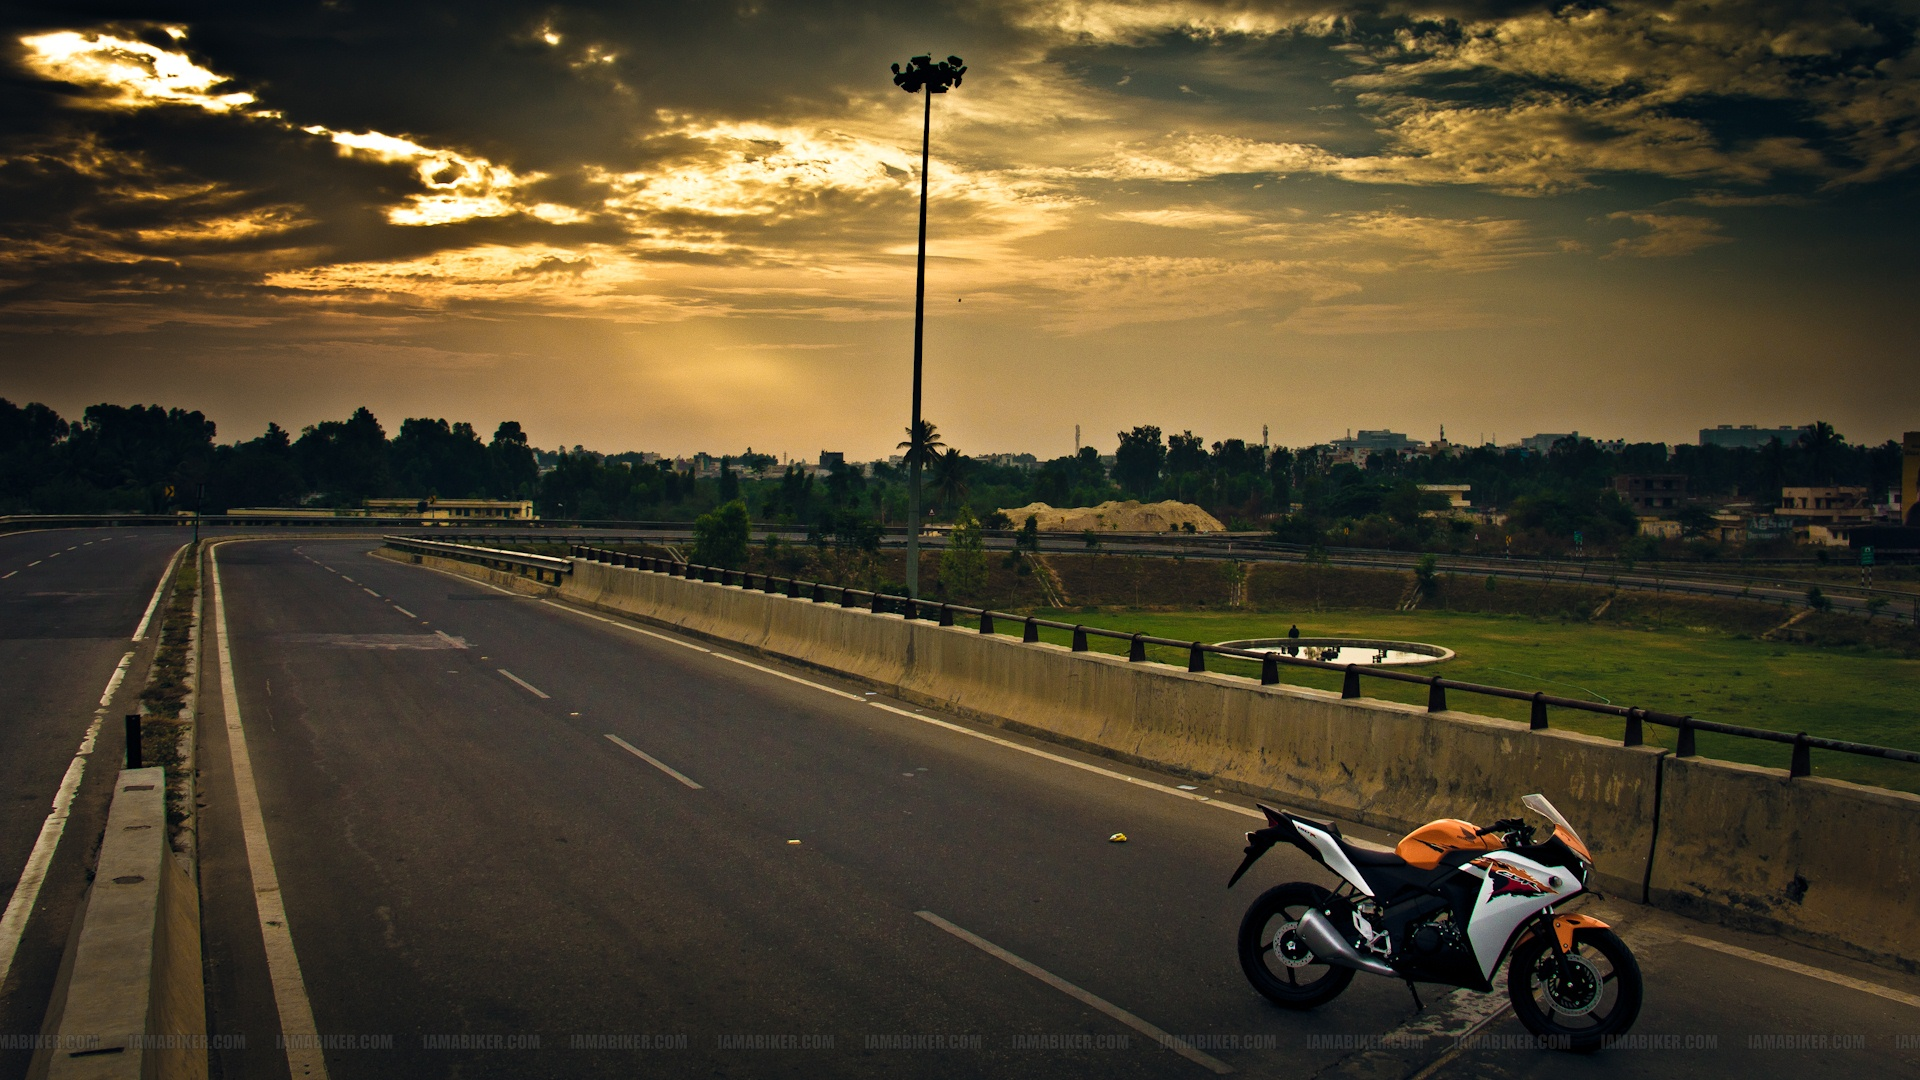 cbr 150r india wallpapers